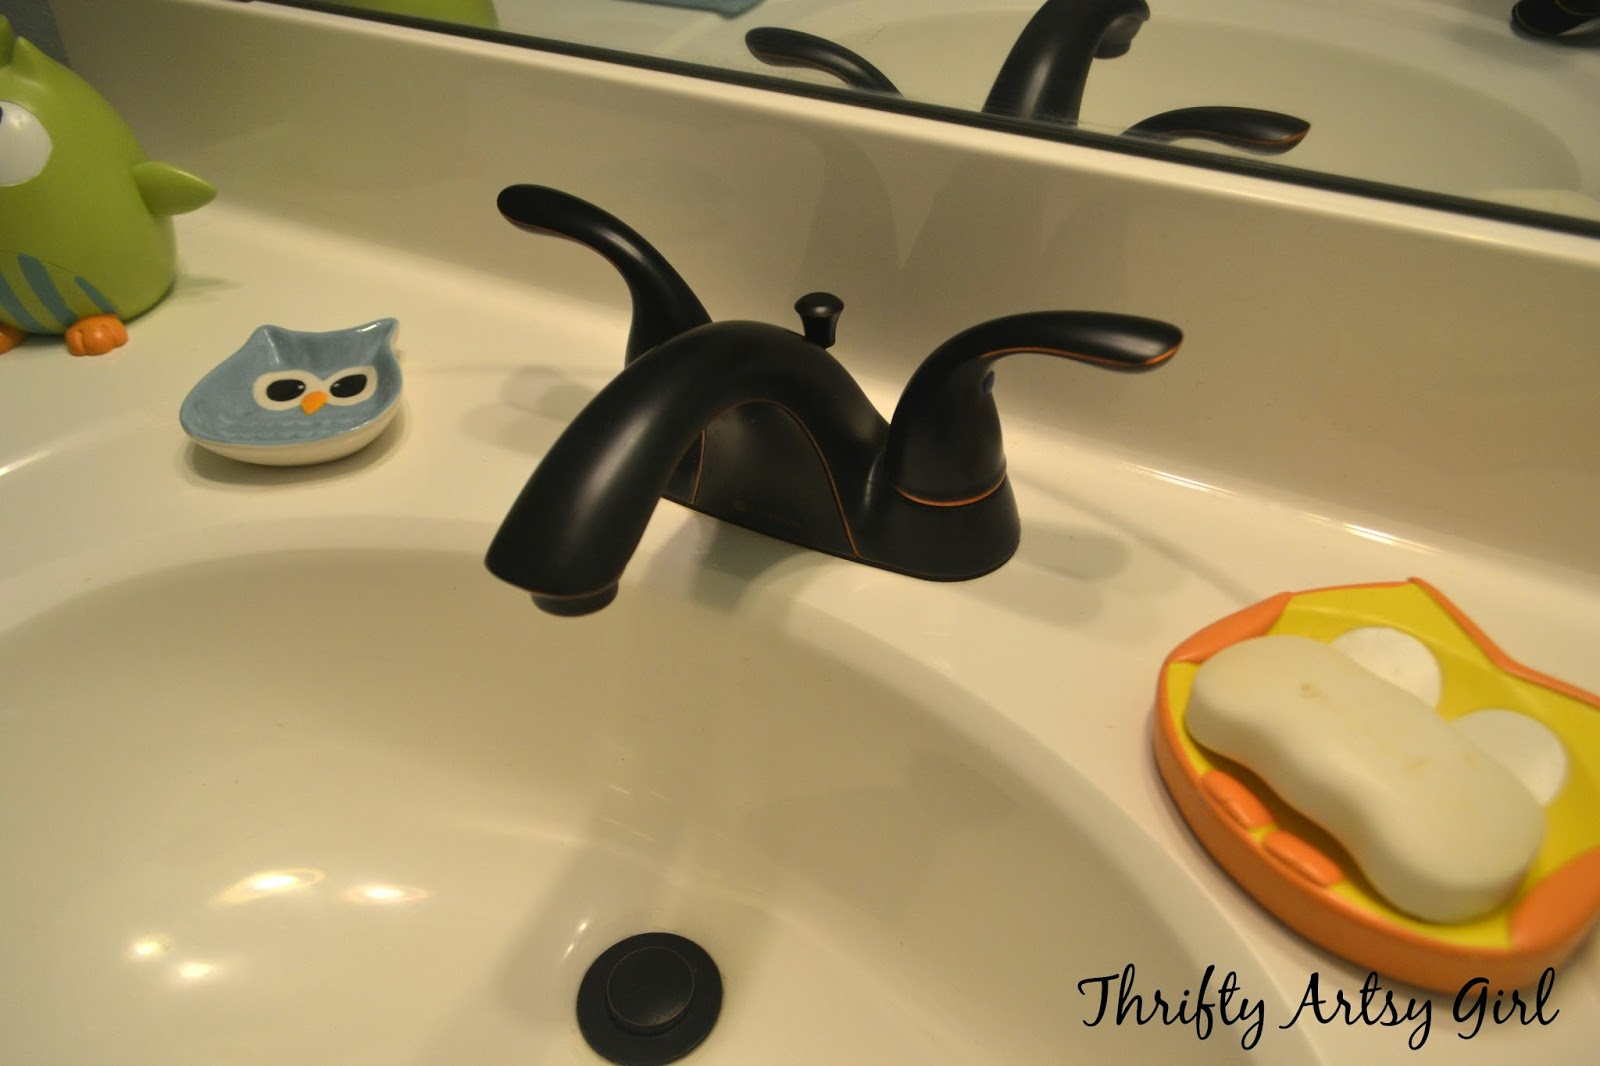 Thrifty Artsy Girl: Builders Grade Teal Bathroom Vanity and Faucet ...